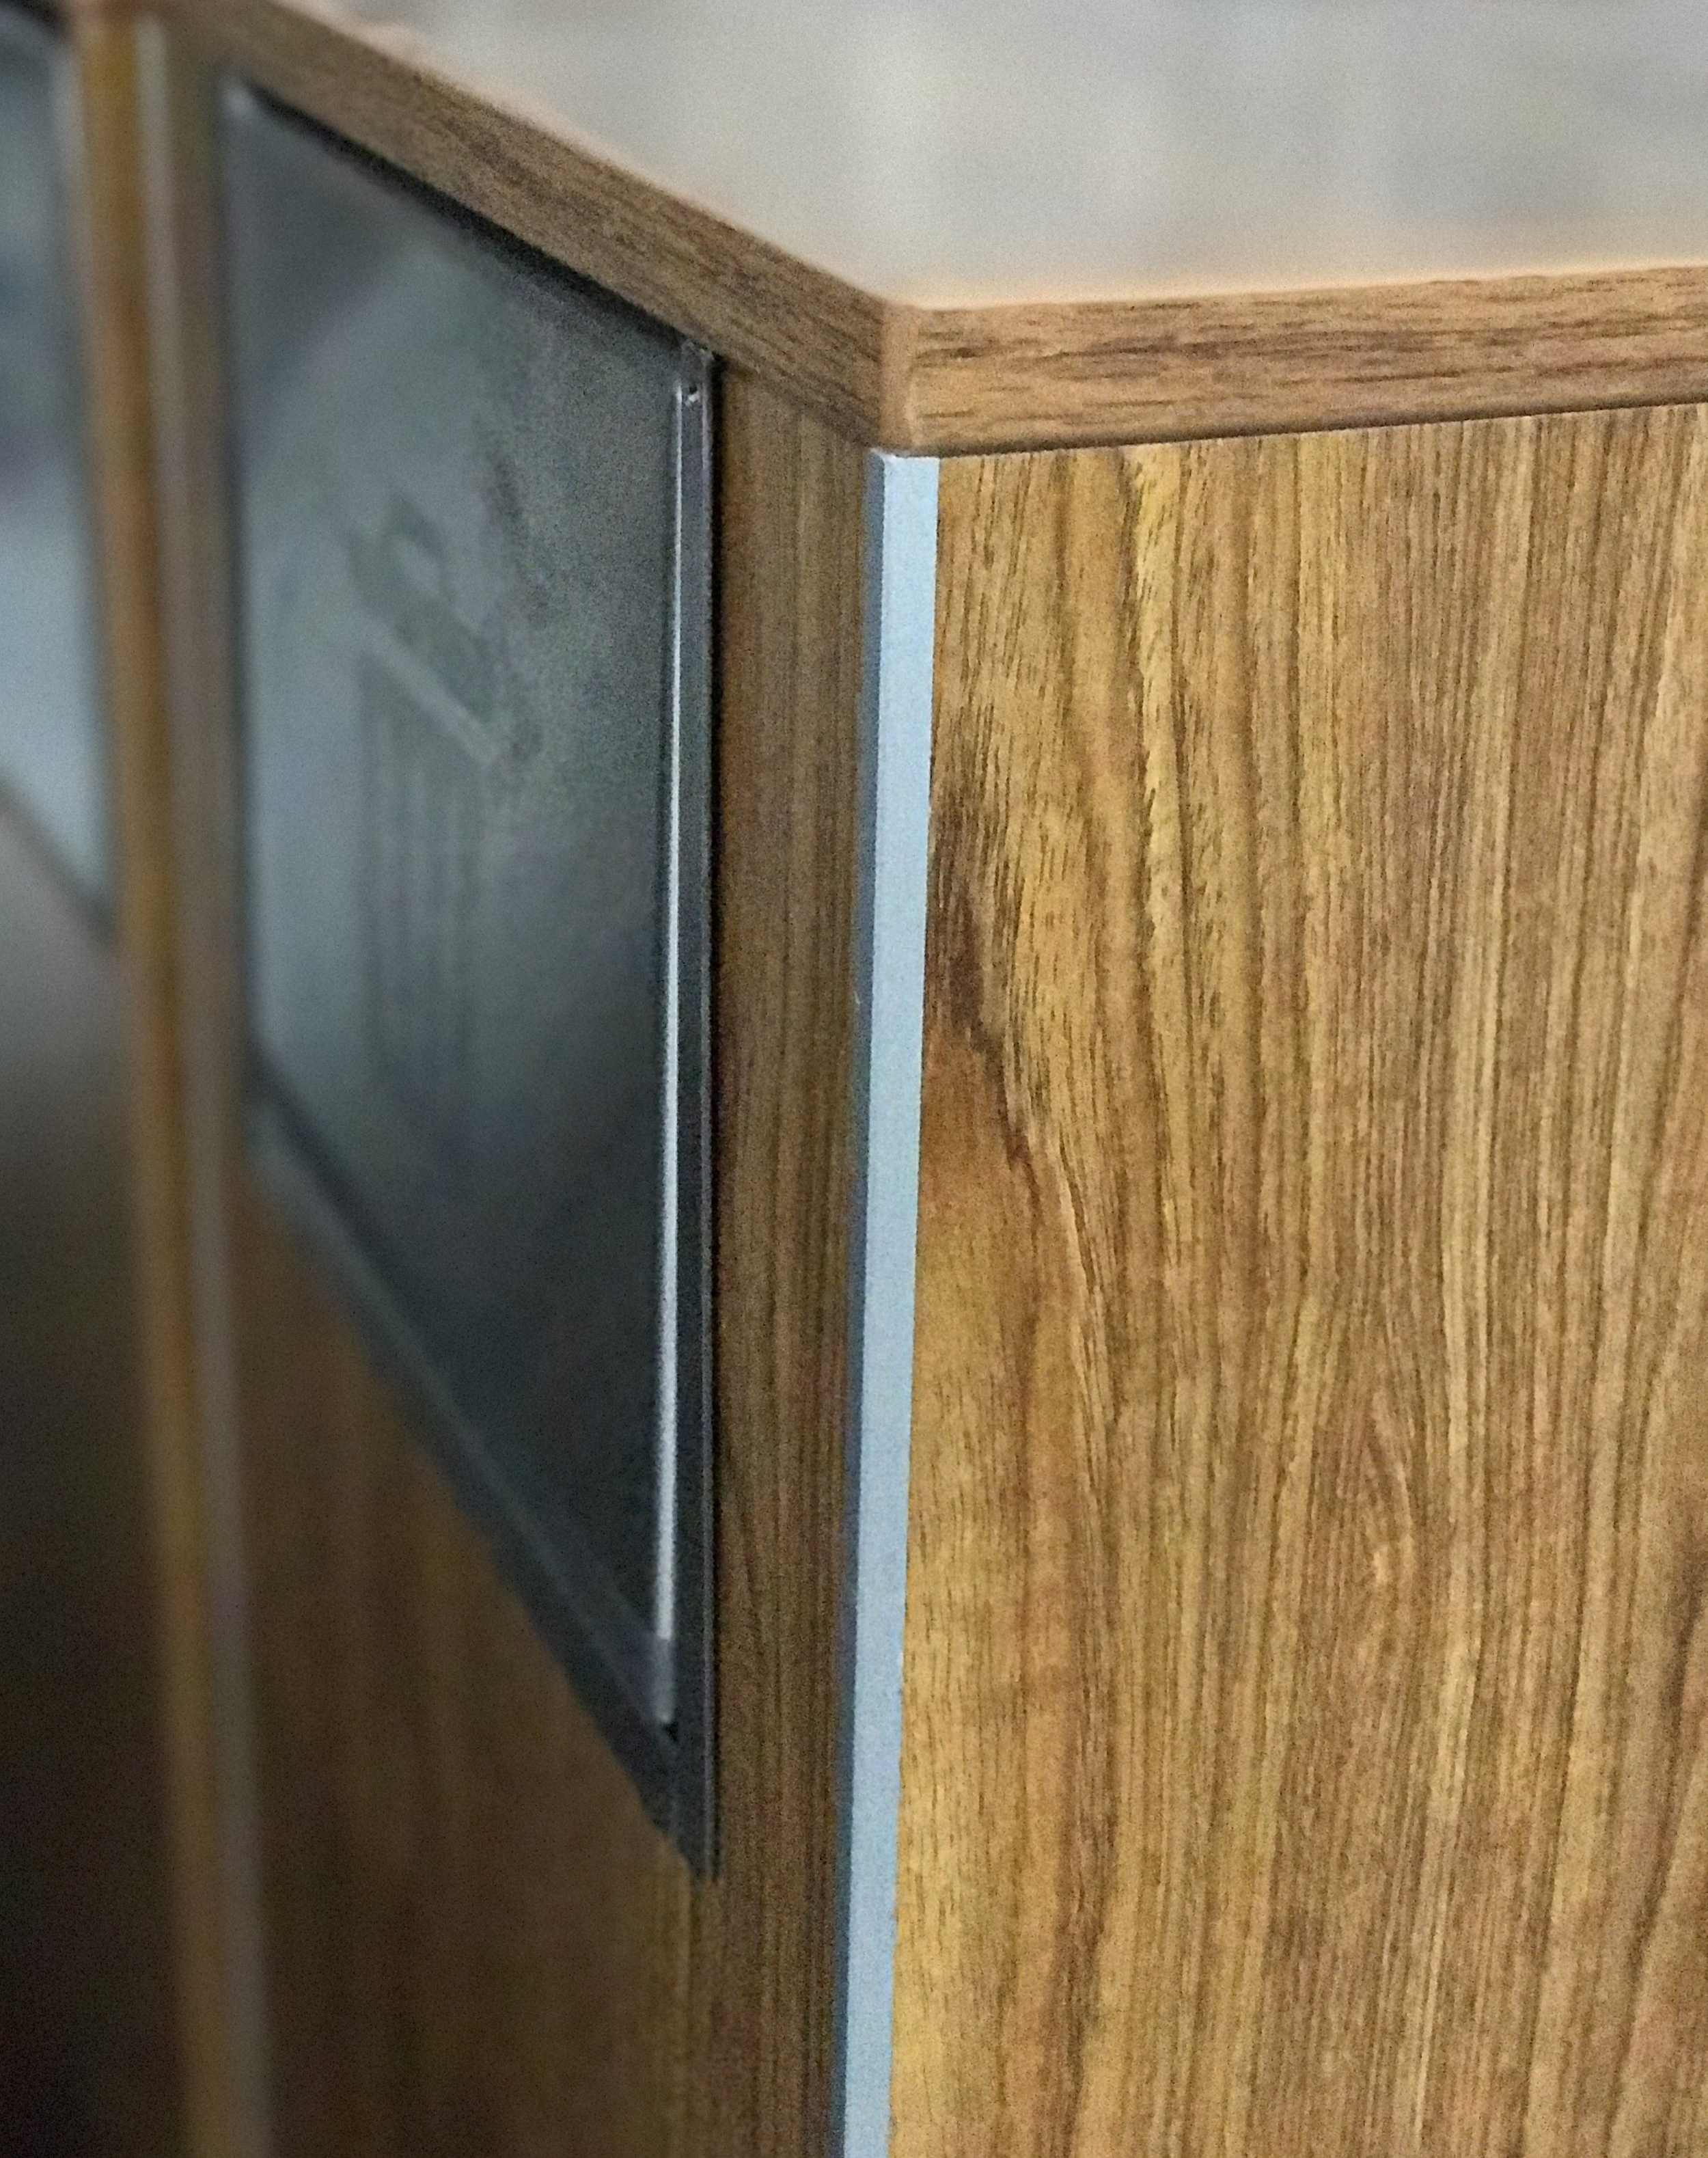 EMI's aluminum corner trim, installed on a trash bin.